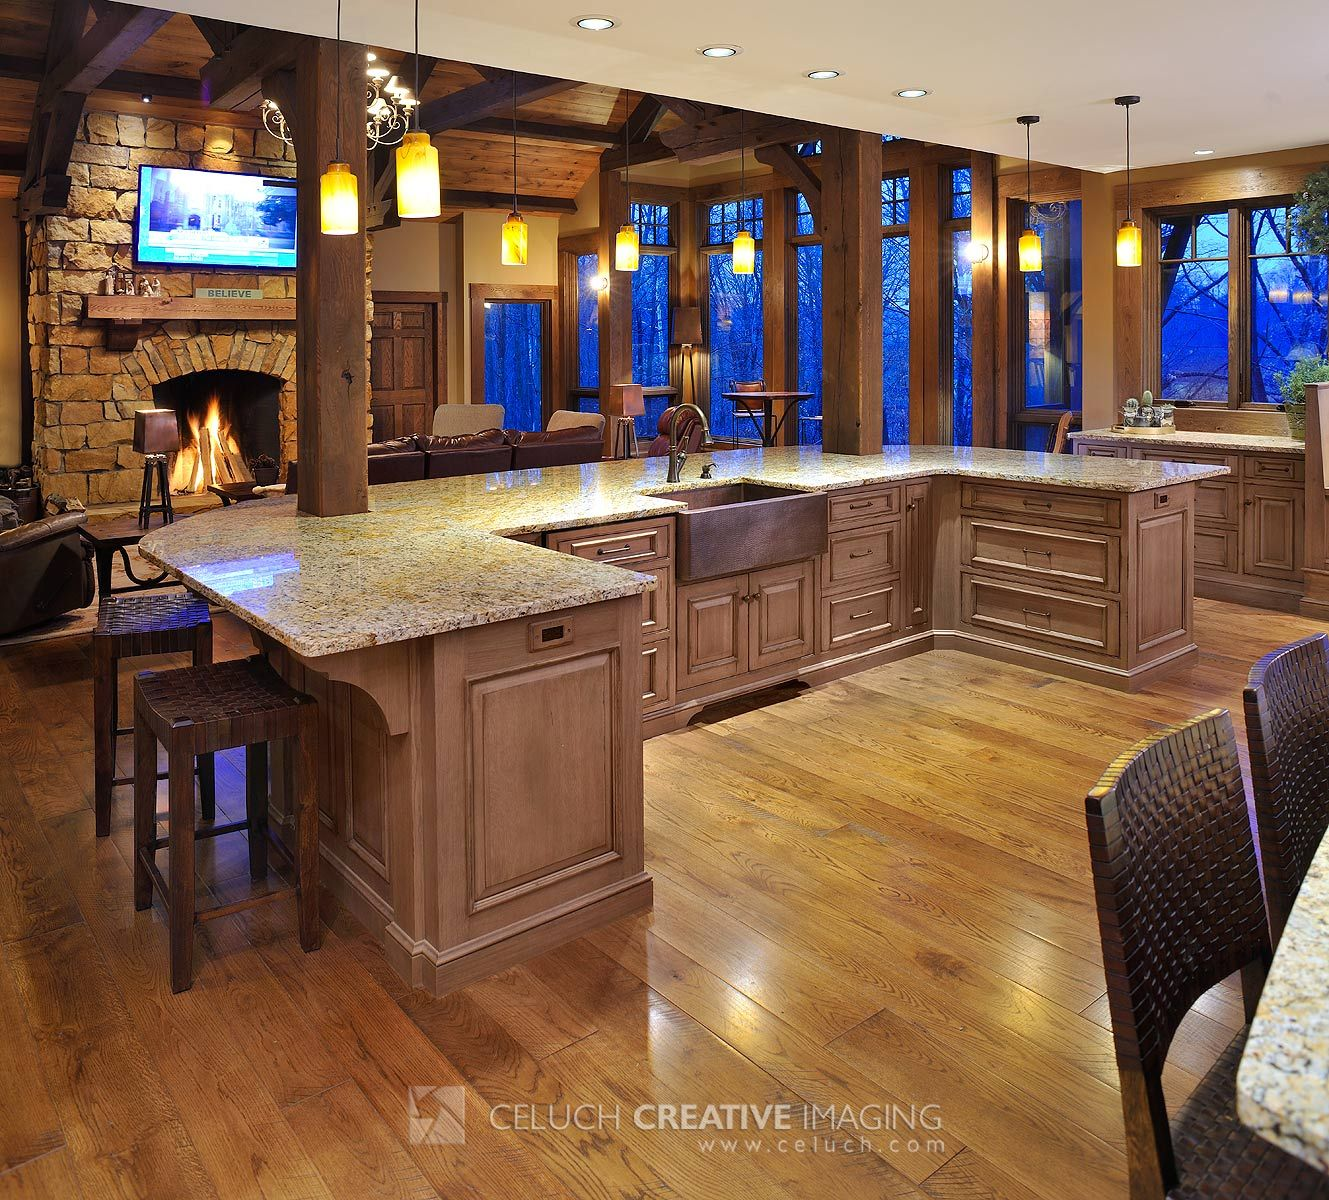 A Frame Kitchen Designs Mullet Cabinet Large Rustic Timber Frame Kitchen With